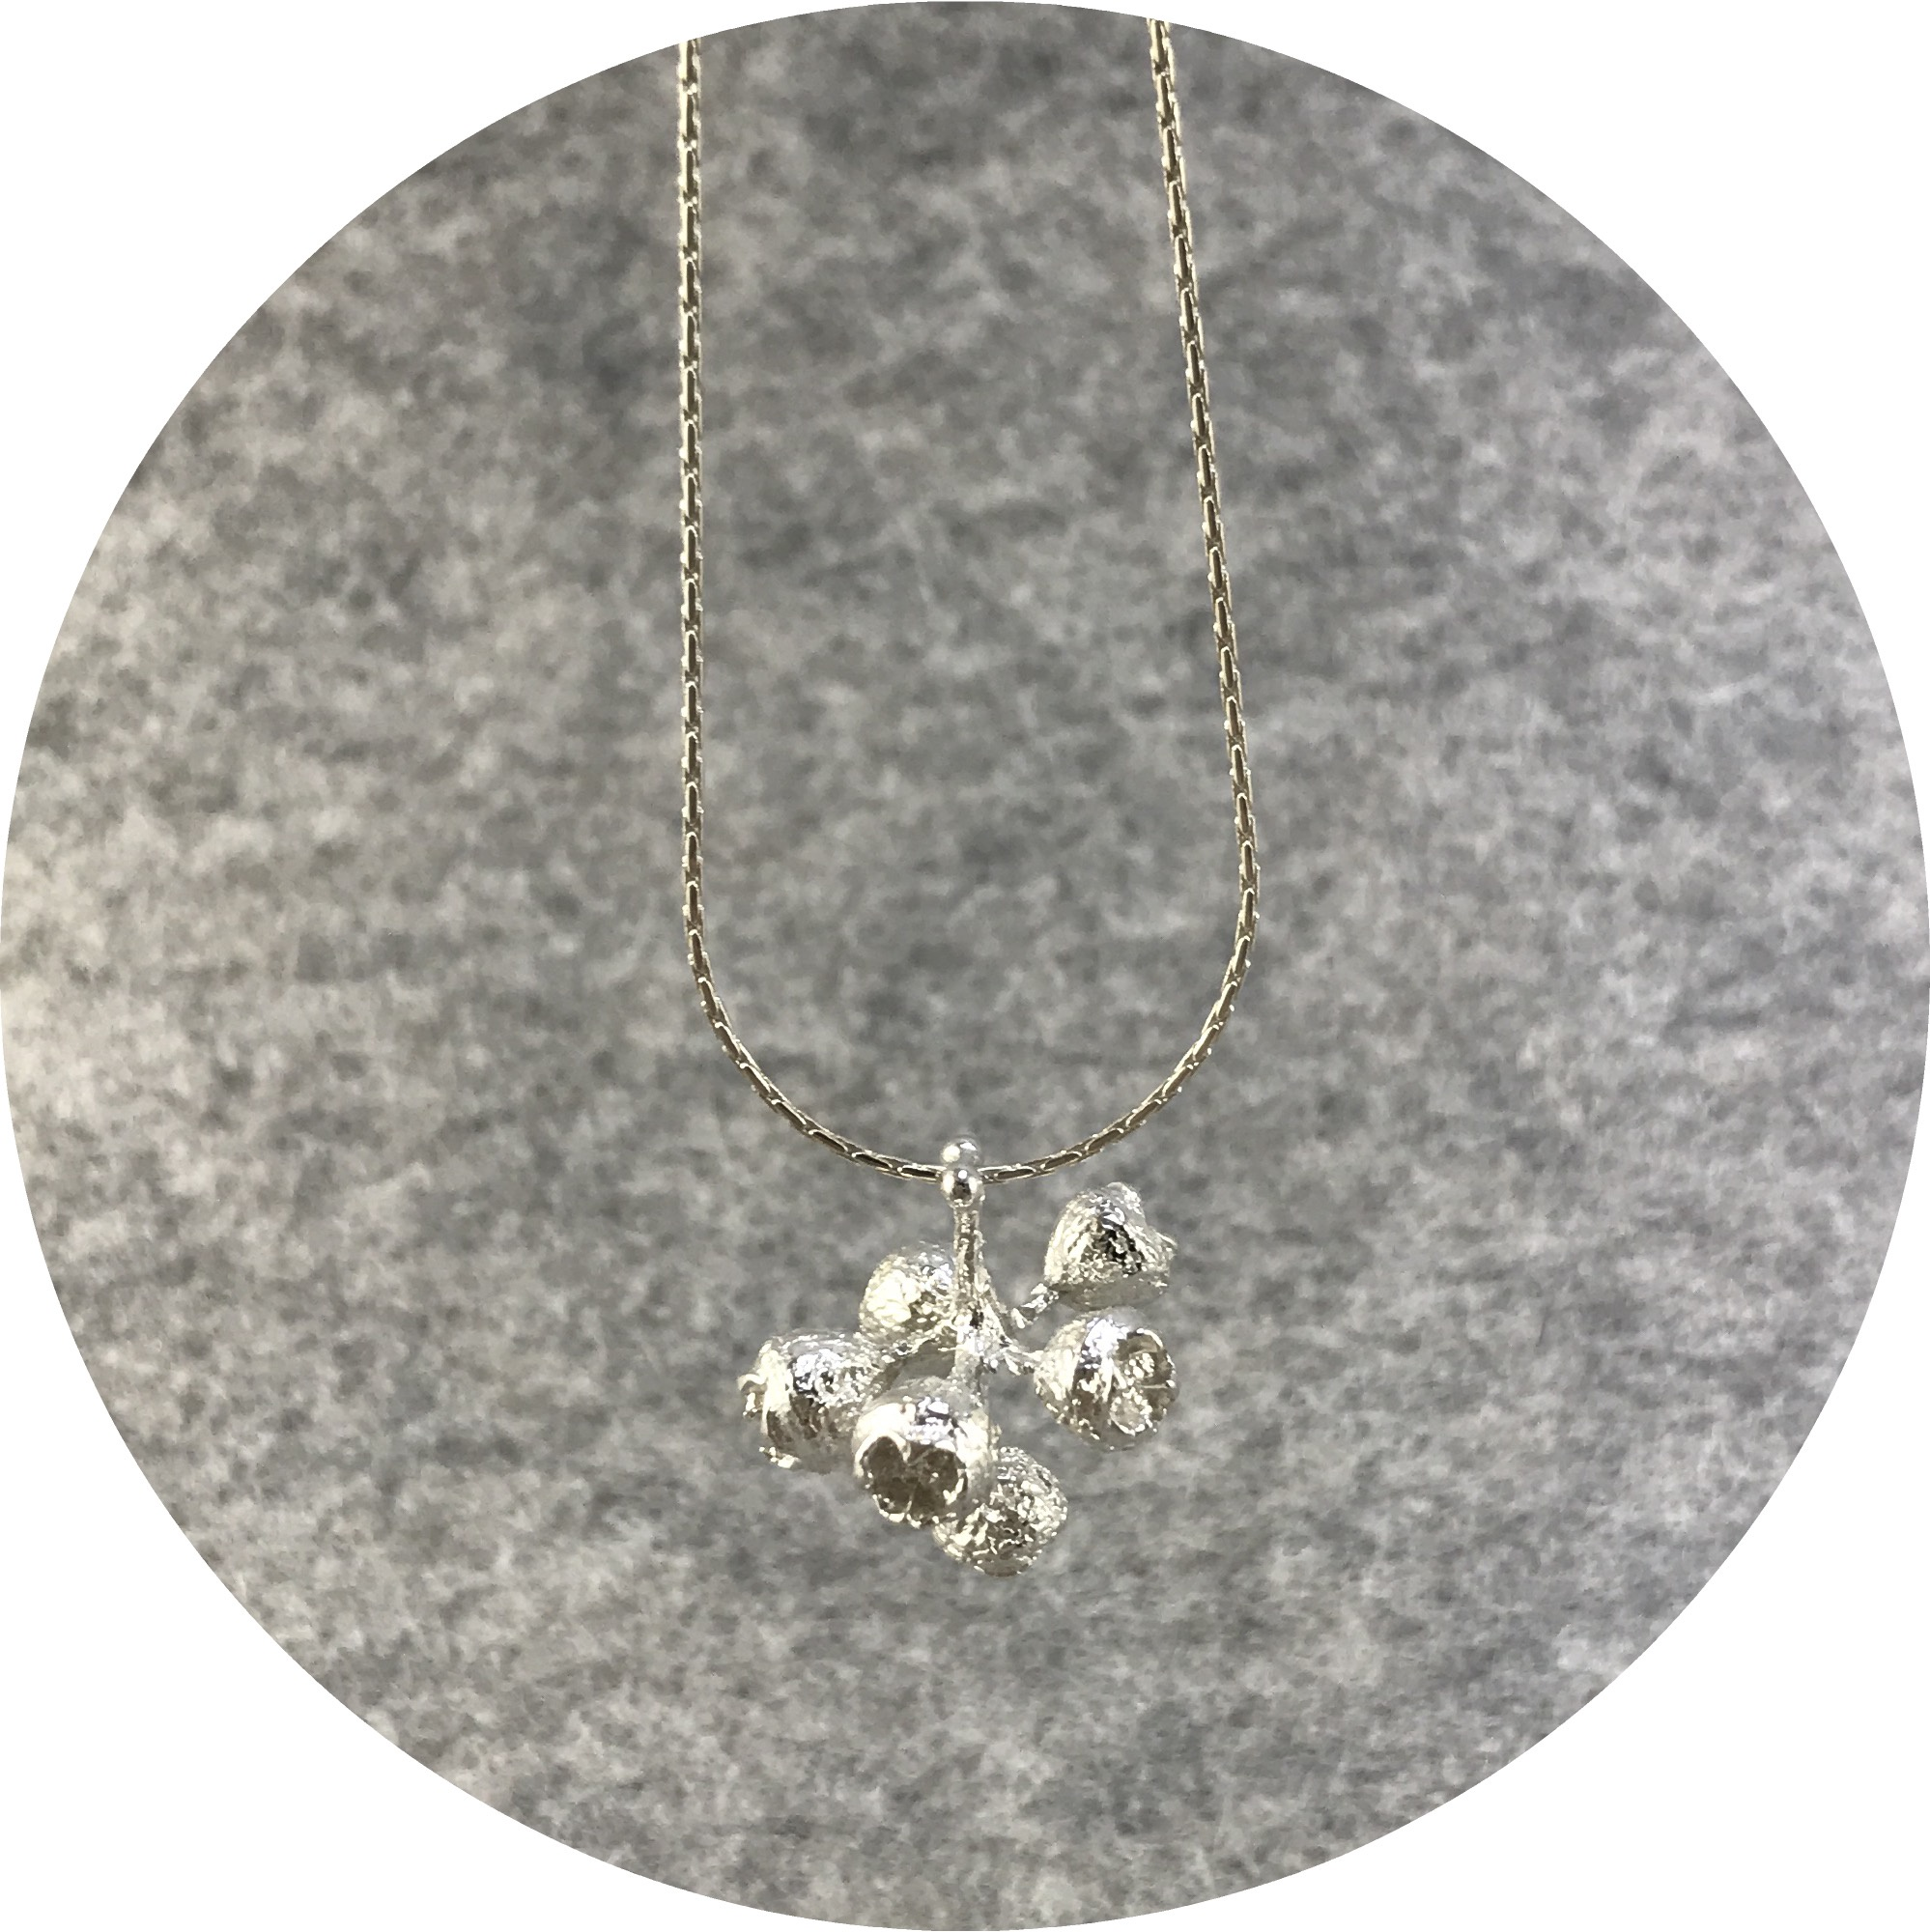 Abby Seymour- Gum nut cluster Amulet. Sterling silver.